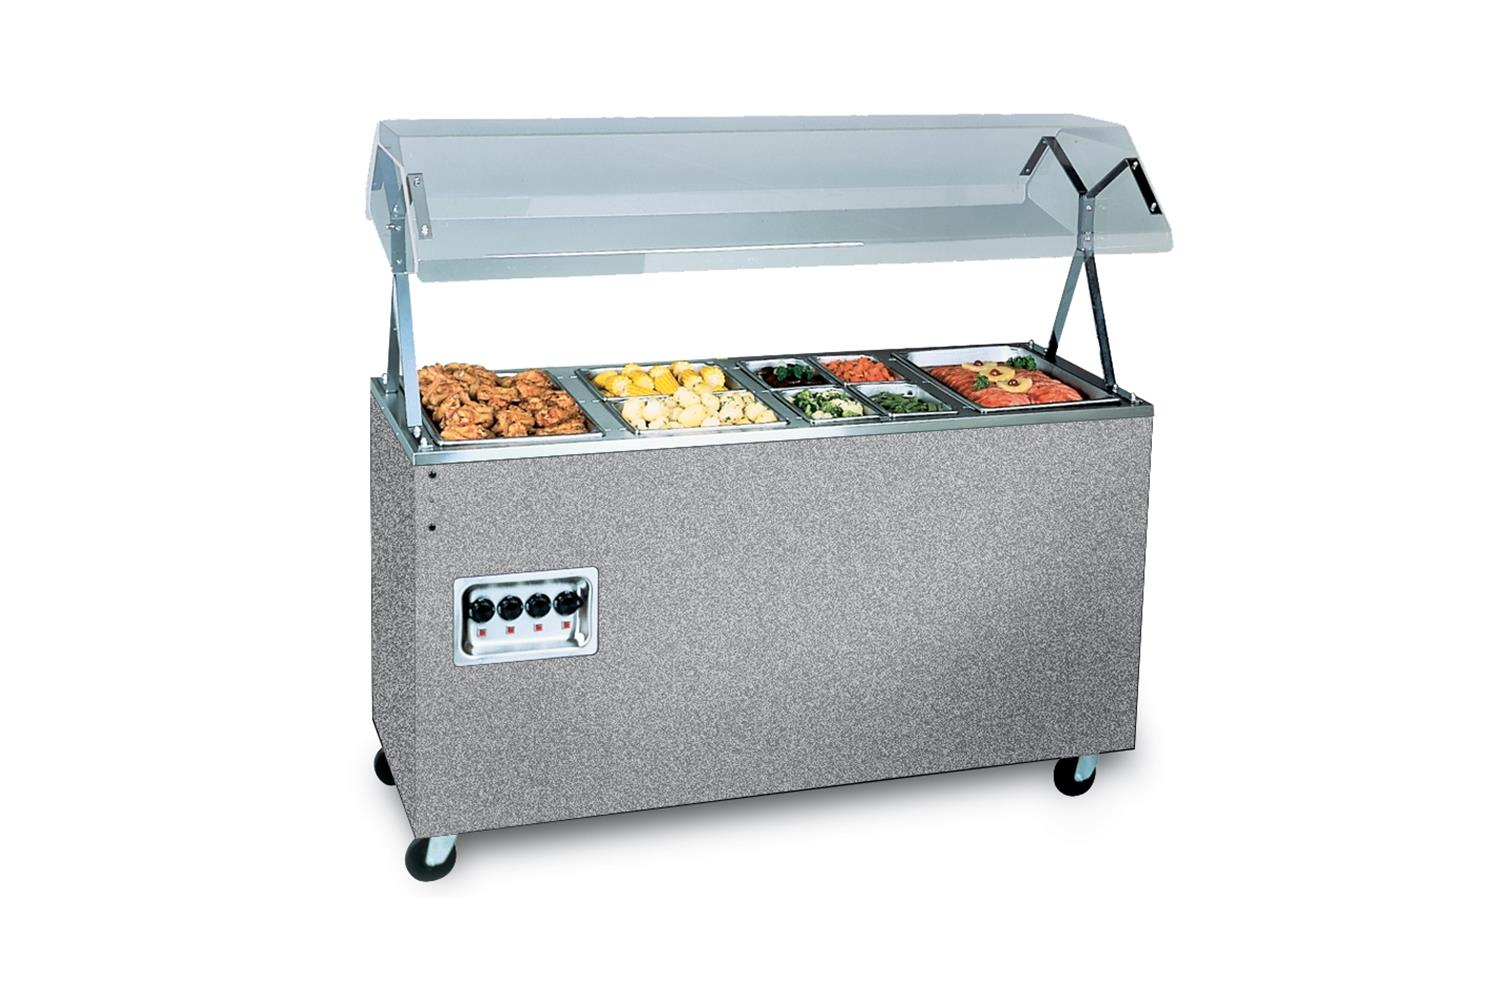 Vollrath 38728N Affordable Portable Hot Food Station, 3 Well